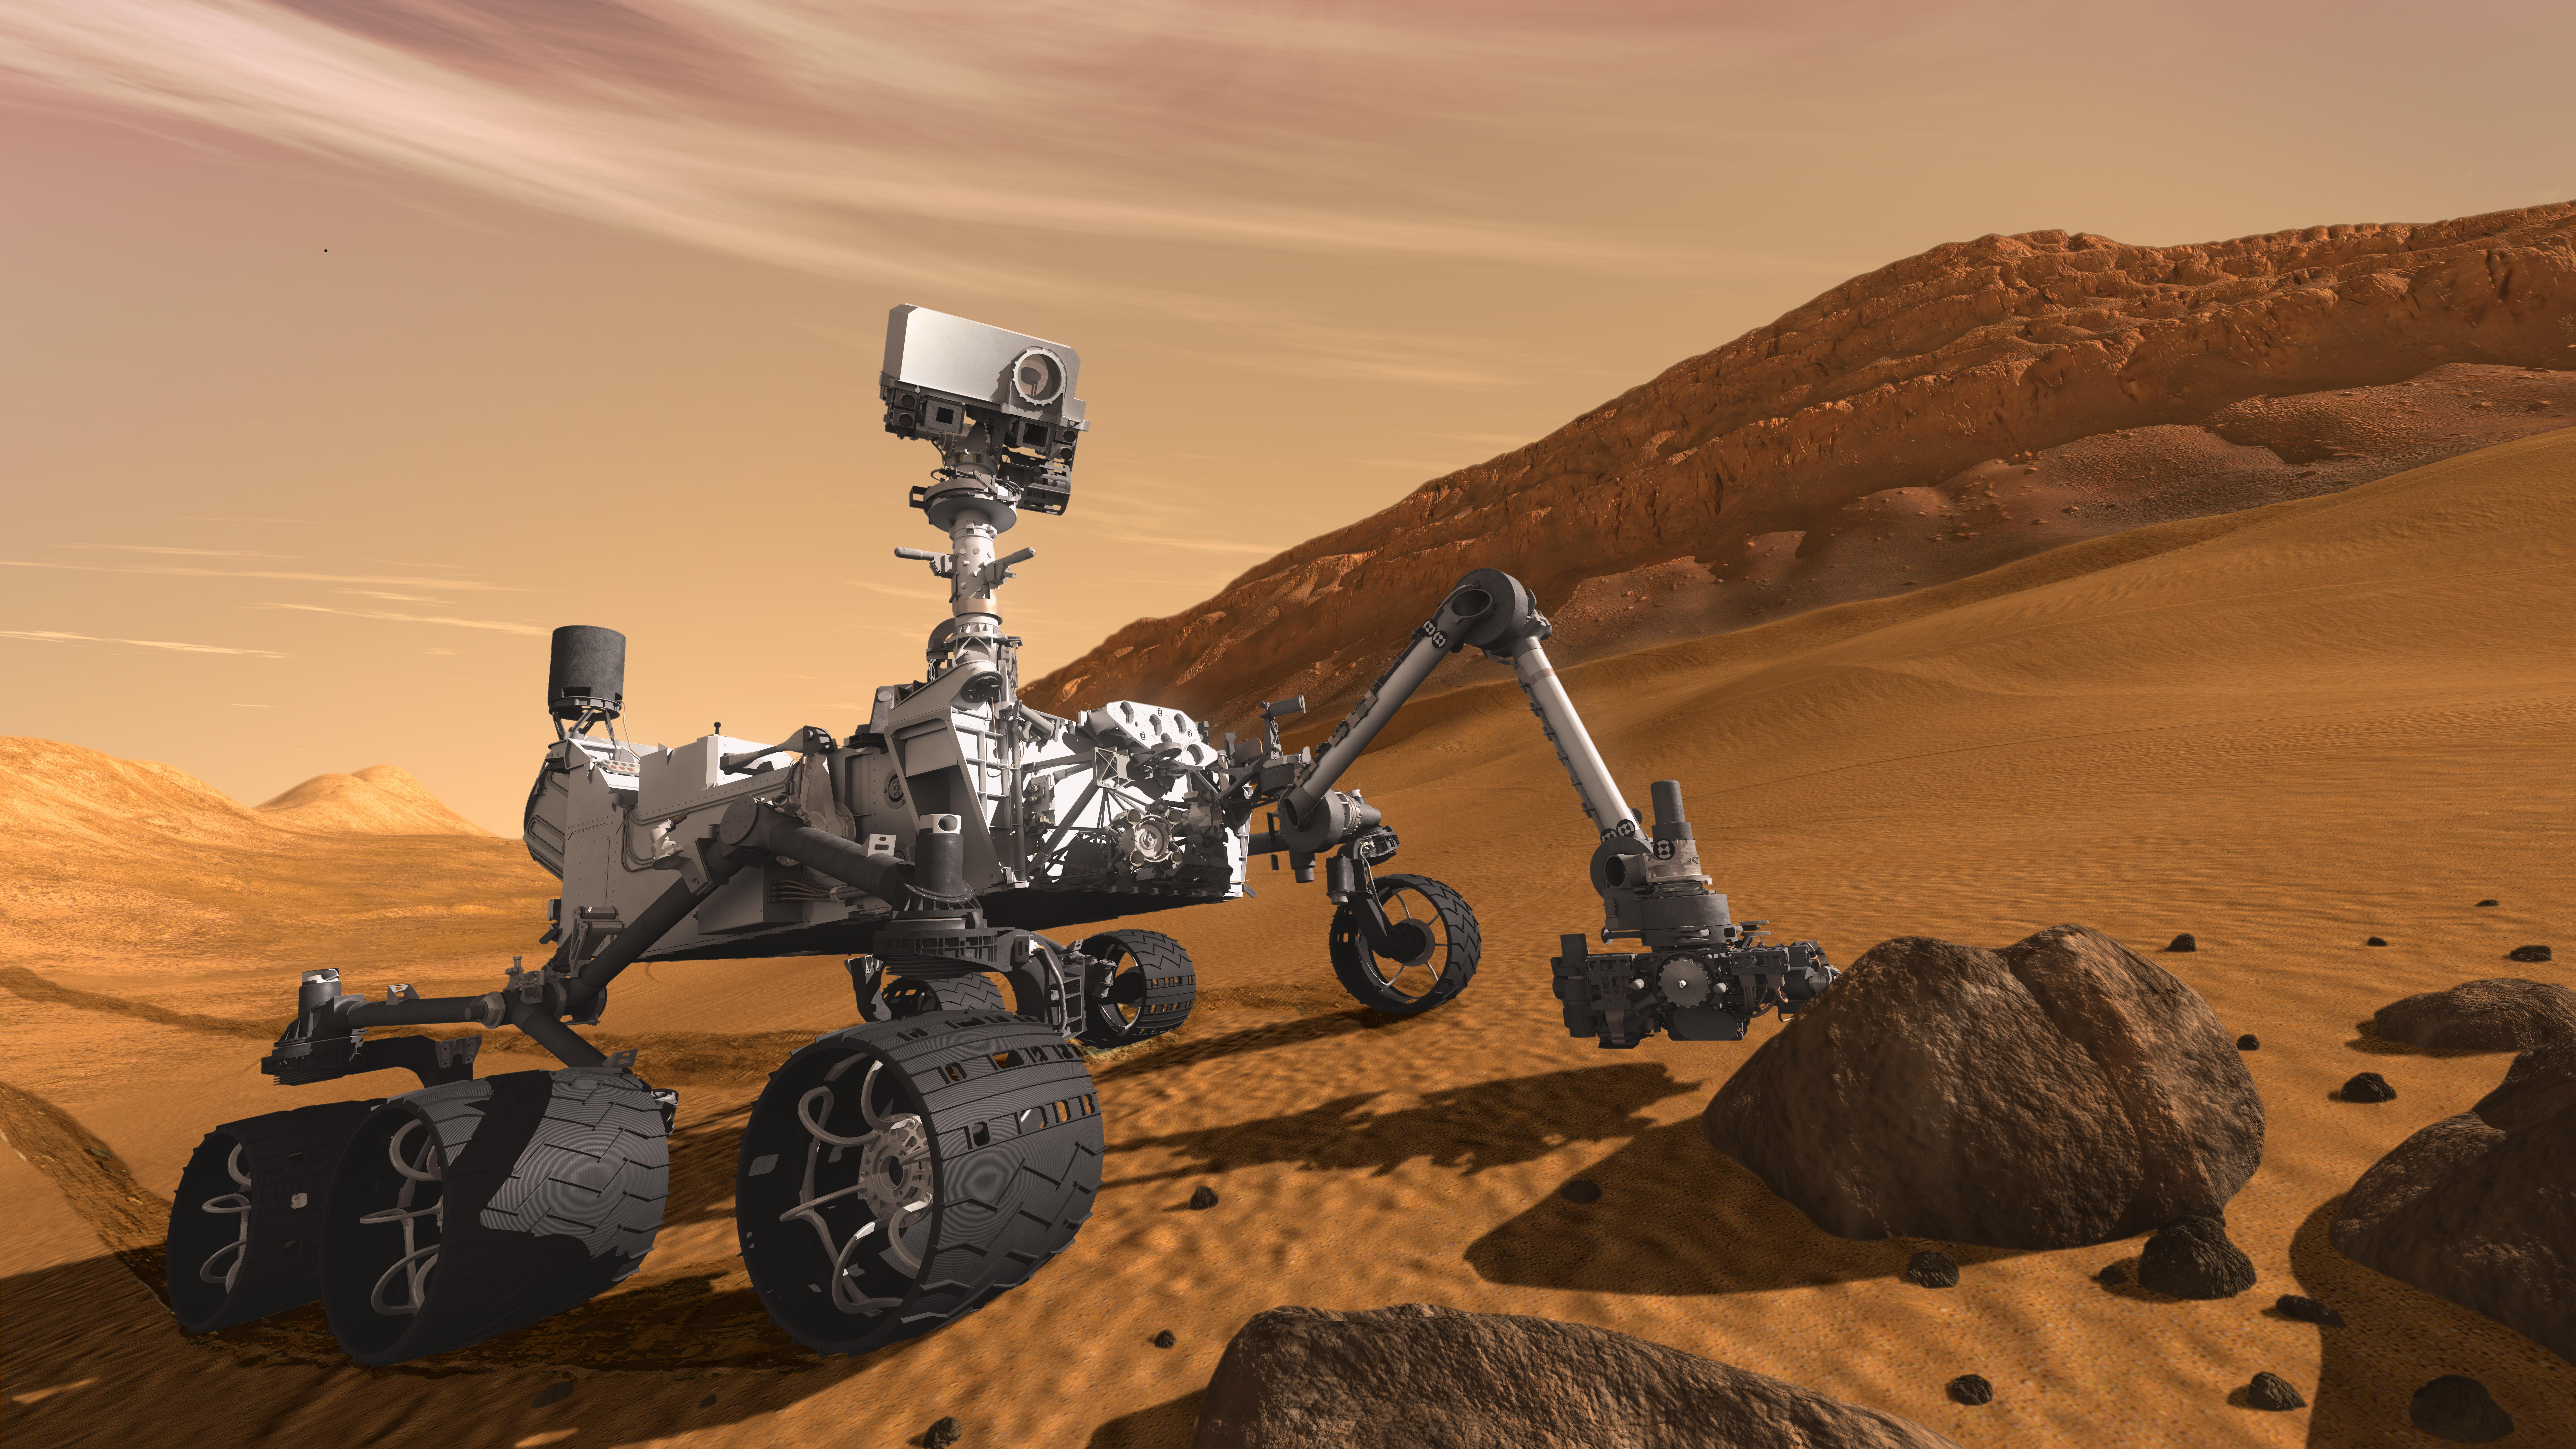 Artist concept of rover Curiosity on Mars.